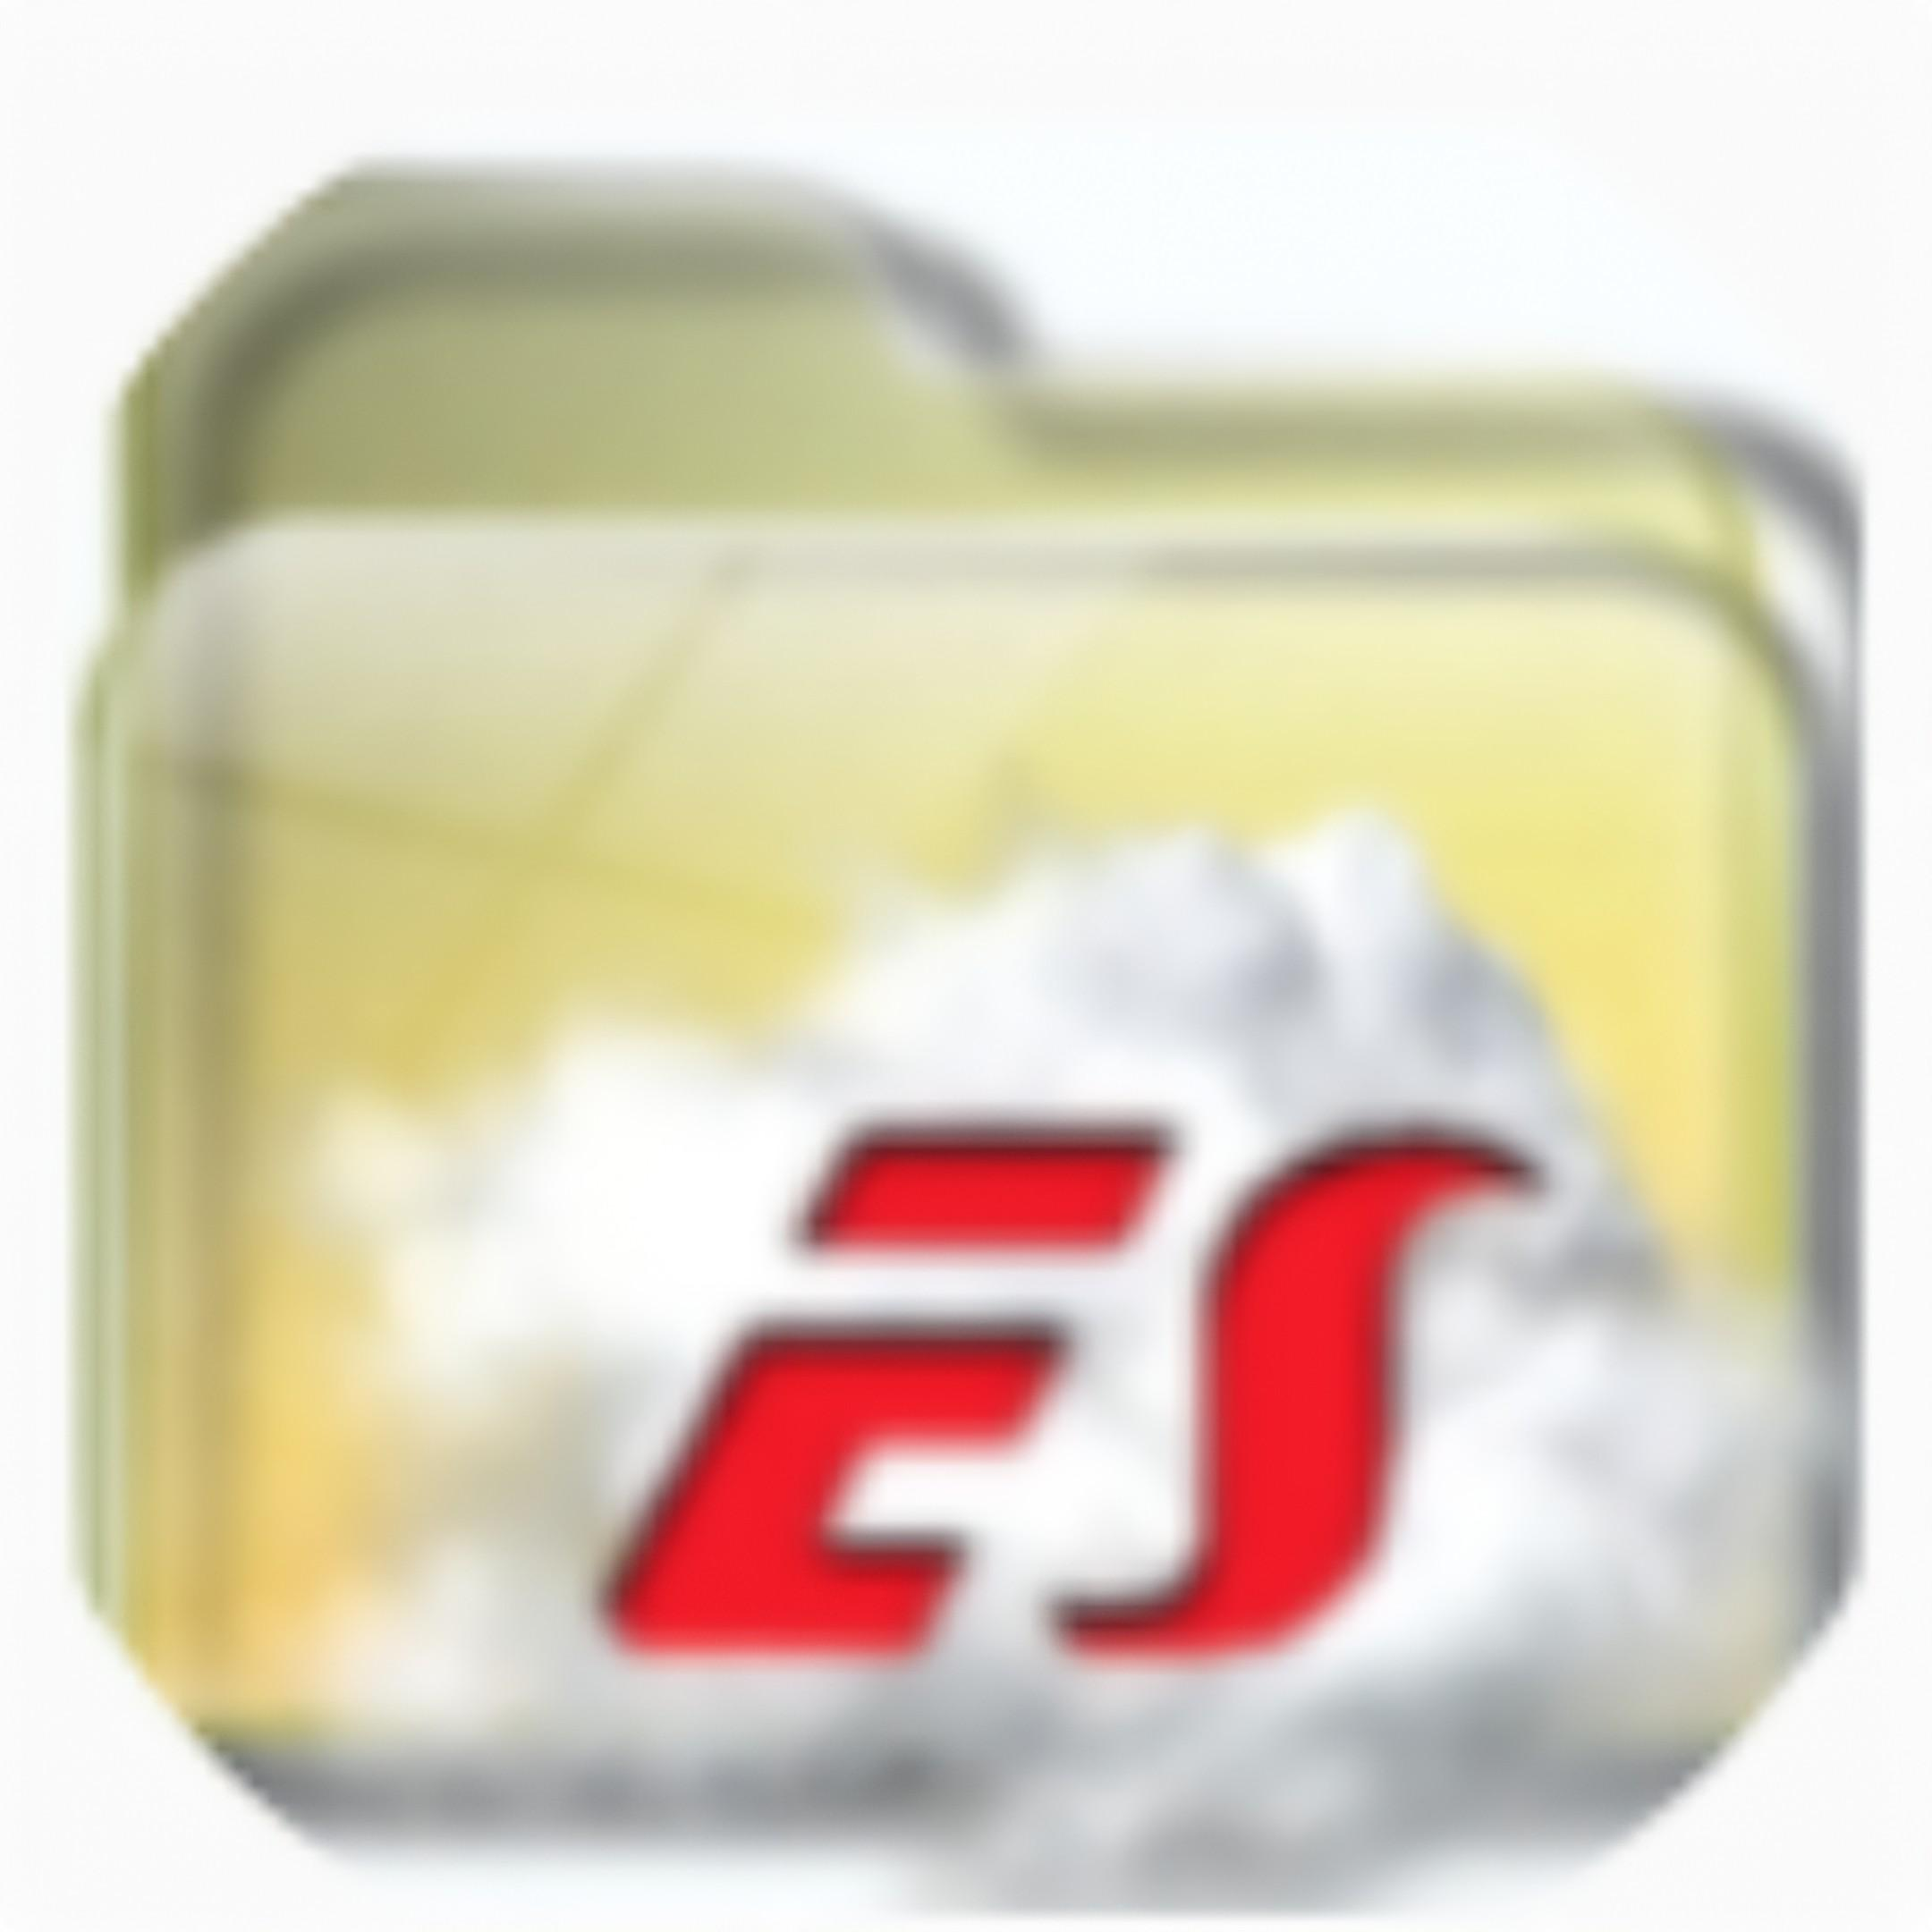 ES File Explorer Gold - File Manager v1.1.4 (Full) (Paid) (Modded) (8.9 MB)